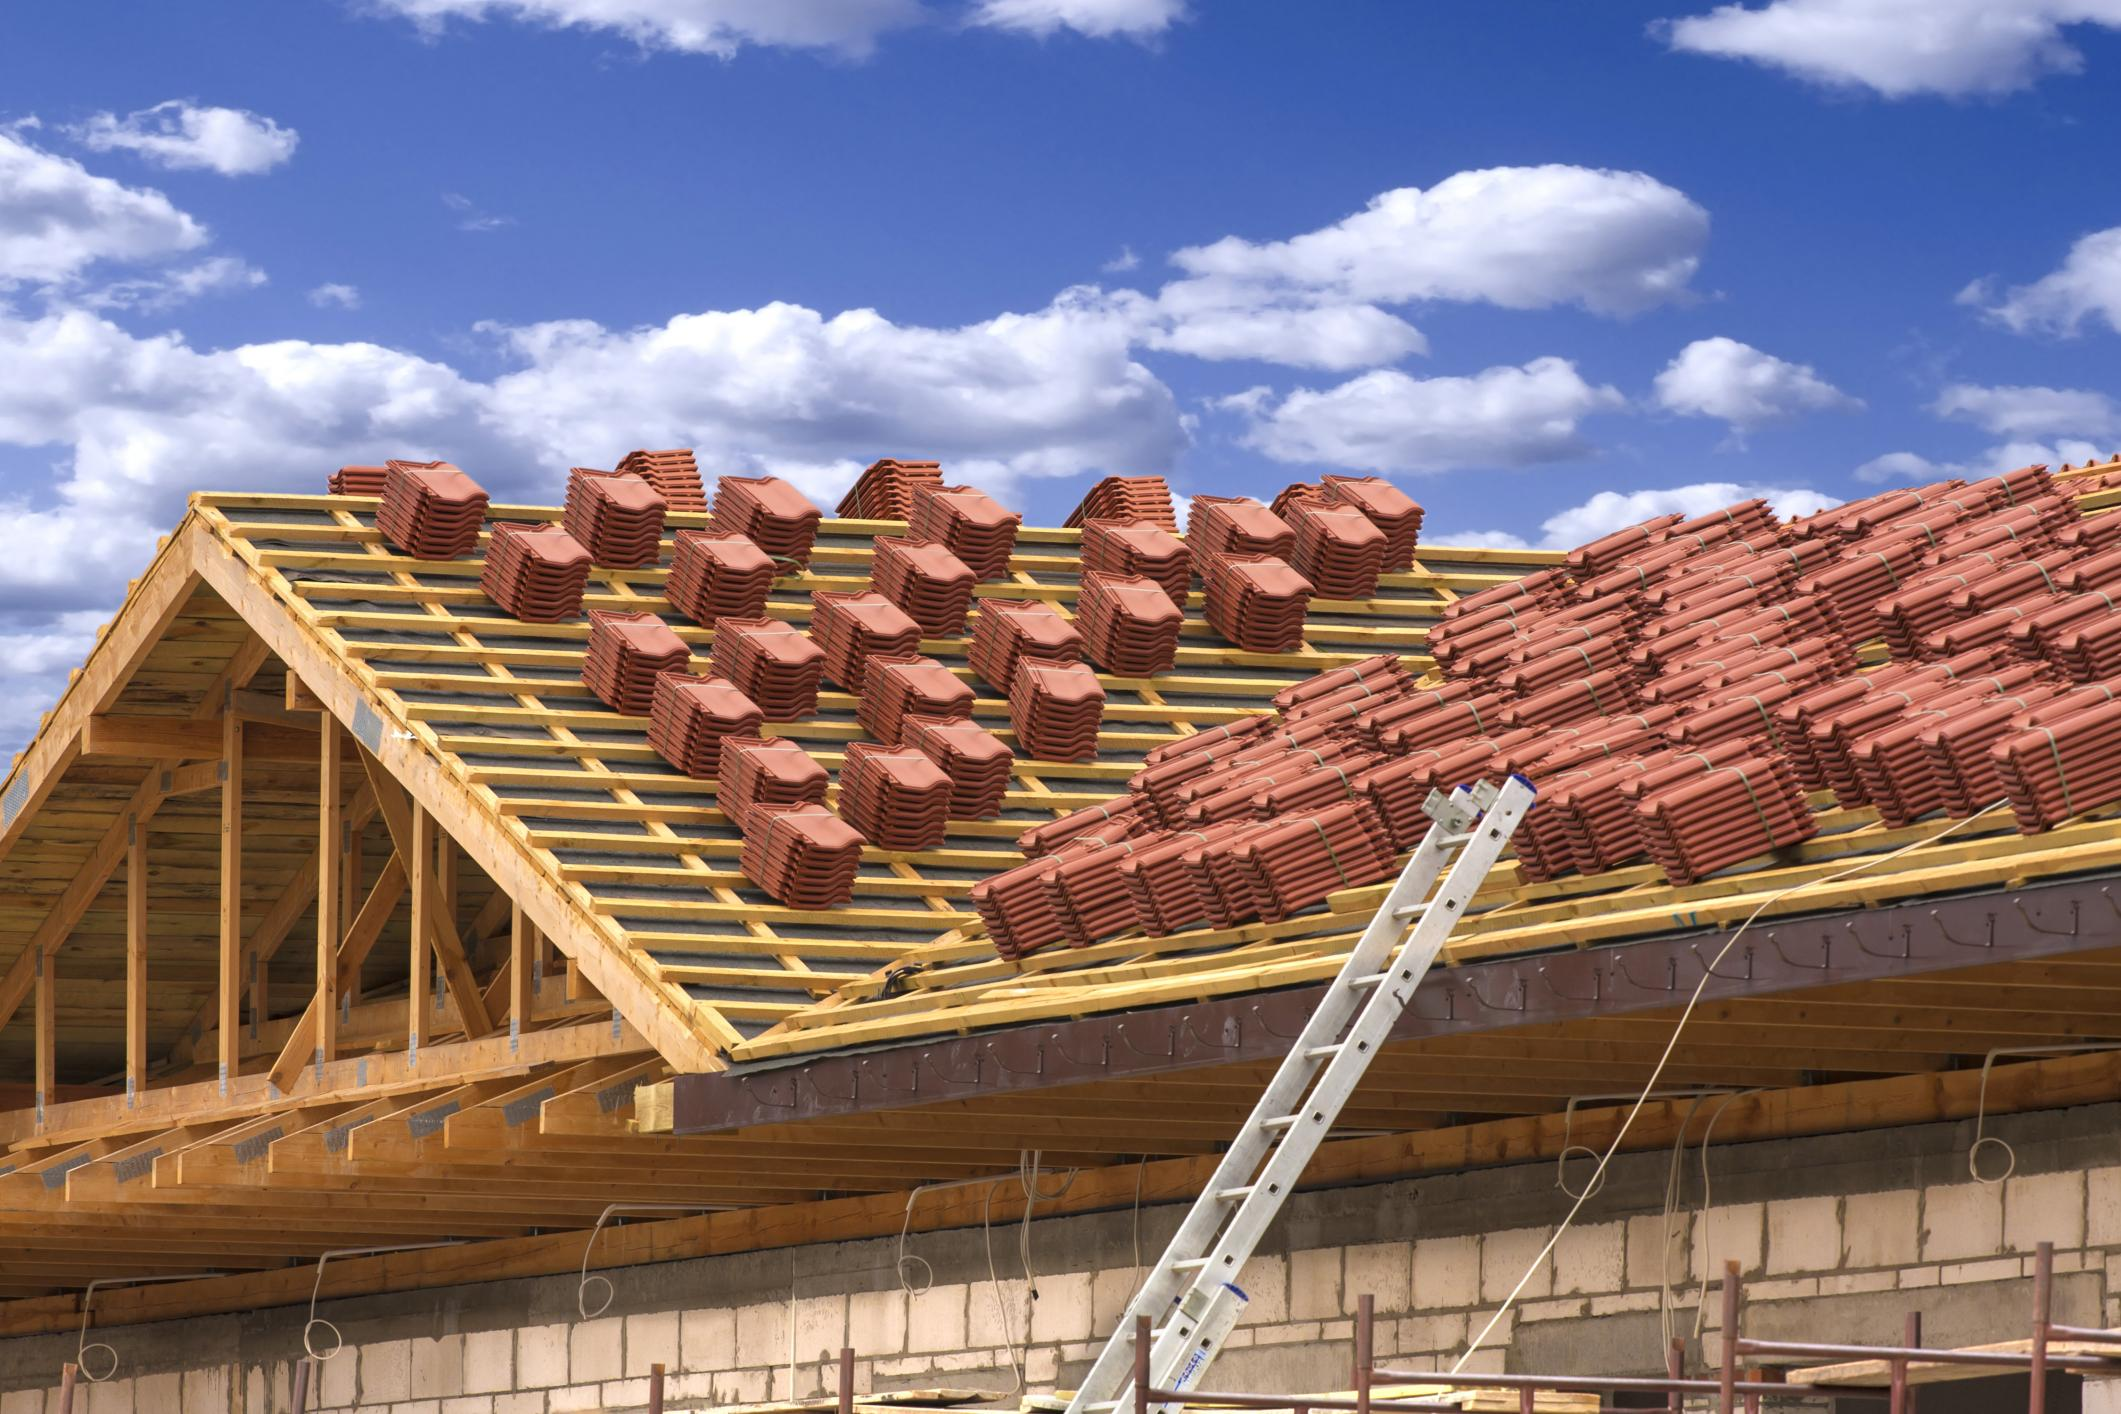 Hereford Roofers - Roofing Sparks MD